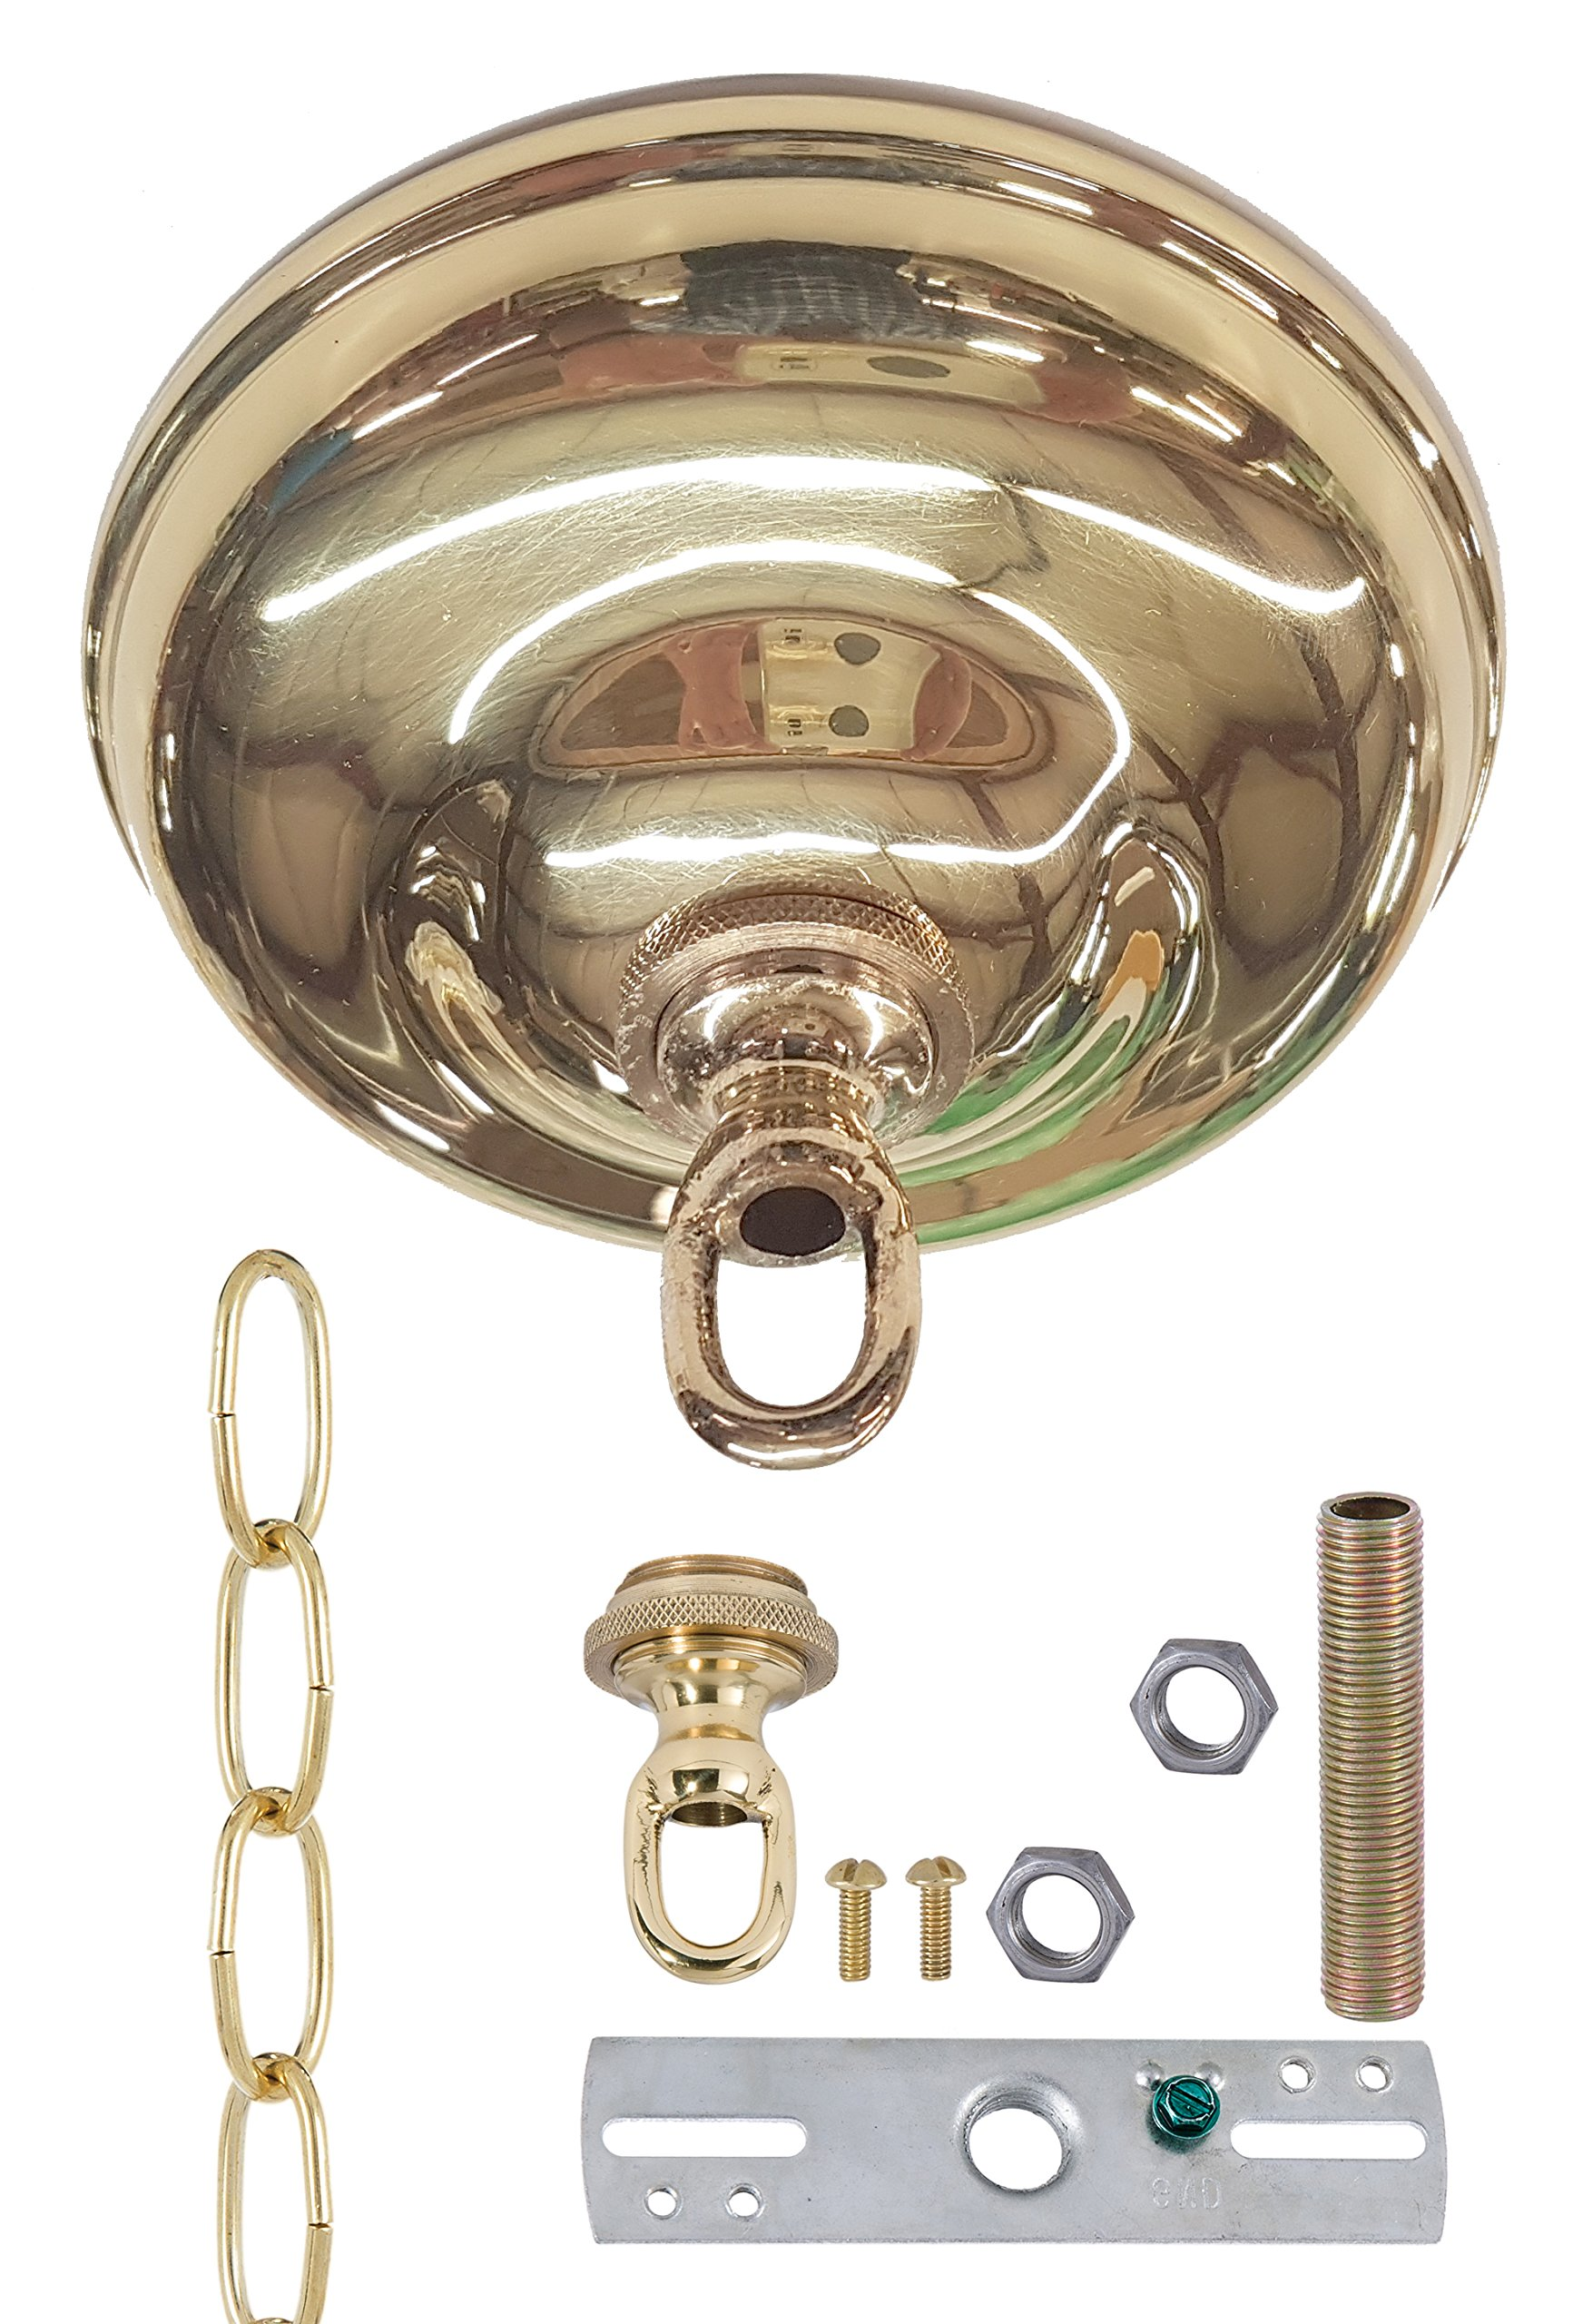 B&P Lamp Polished & Lacquered Brass Finish, Canopy Kit, 5 1/2'' Dia.